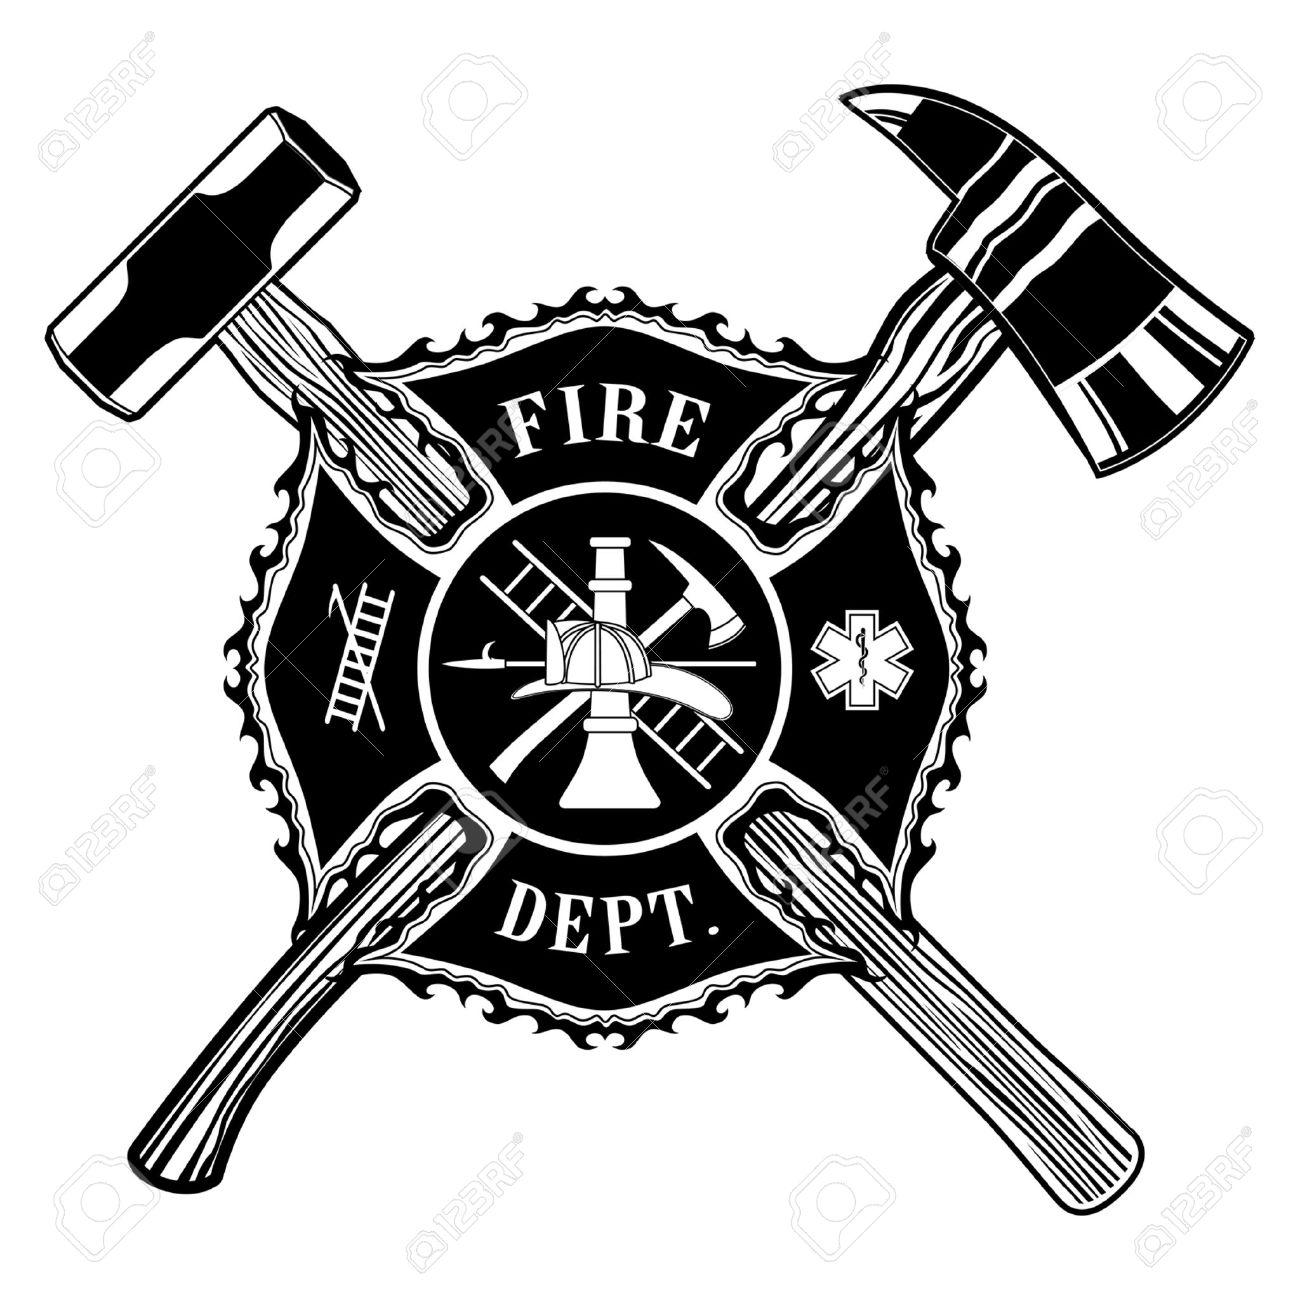 Maltese cross stock photos royalty free maltese cross images and firefighter cross ax and sledge hammer is an illustration of a firefighter or fireman maltese cross biocorpaavc